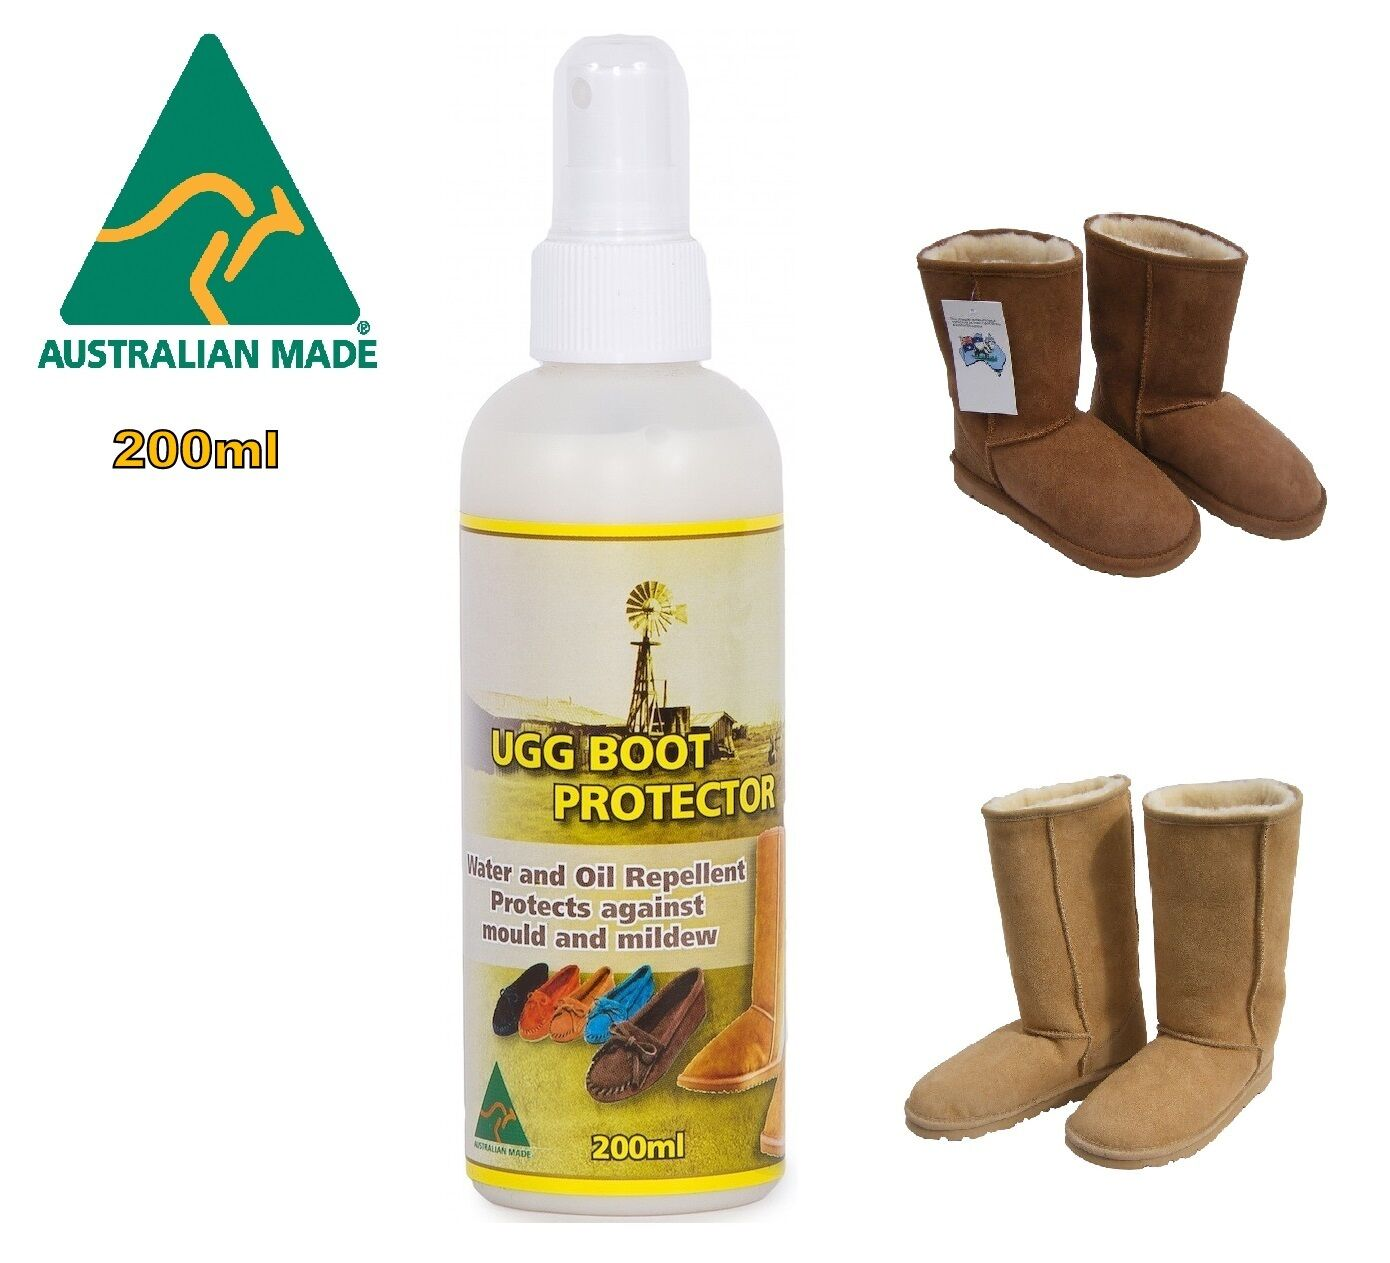 133e7cf15b0 Ugg Boot Sheepskin Protector Water & Stain Waterproof Spray Leather Suede  Fabric